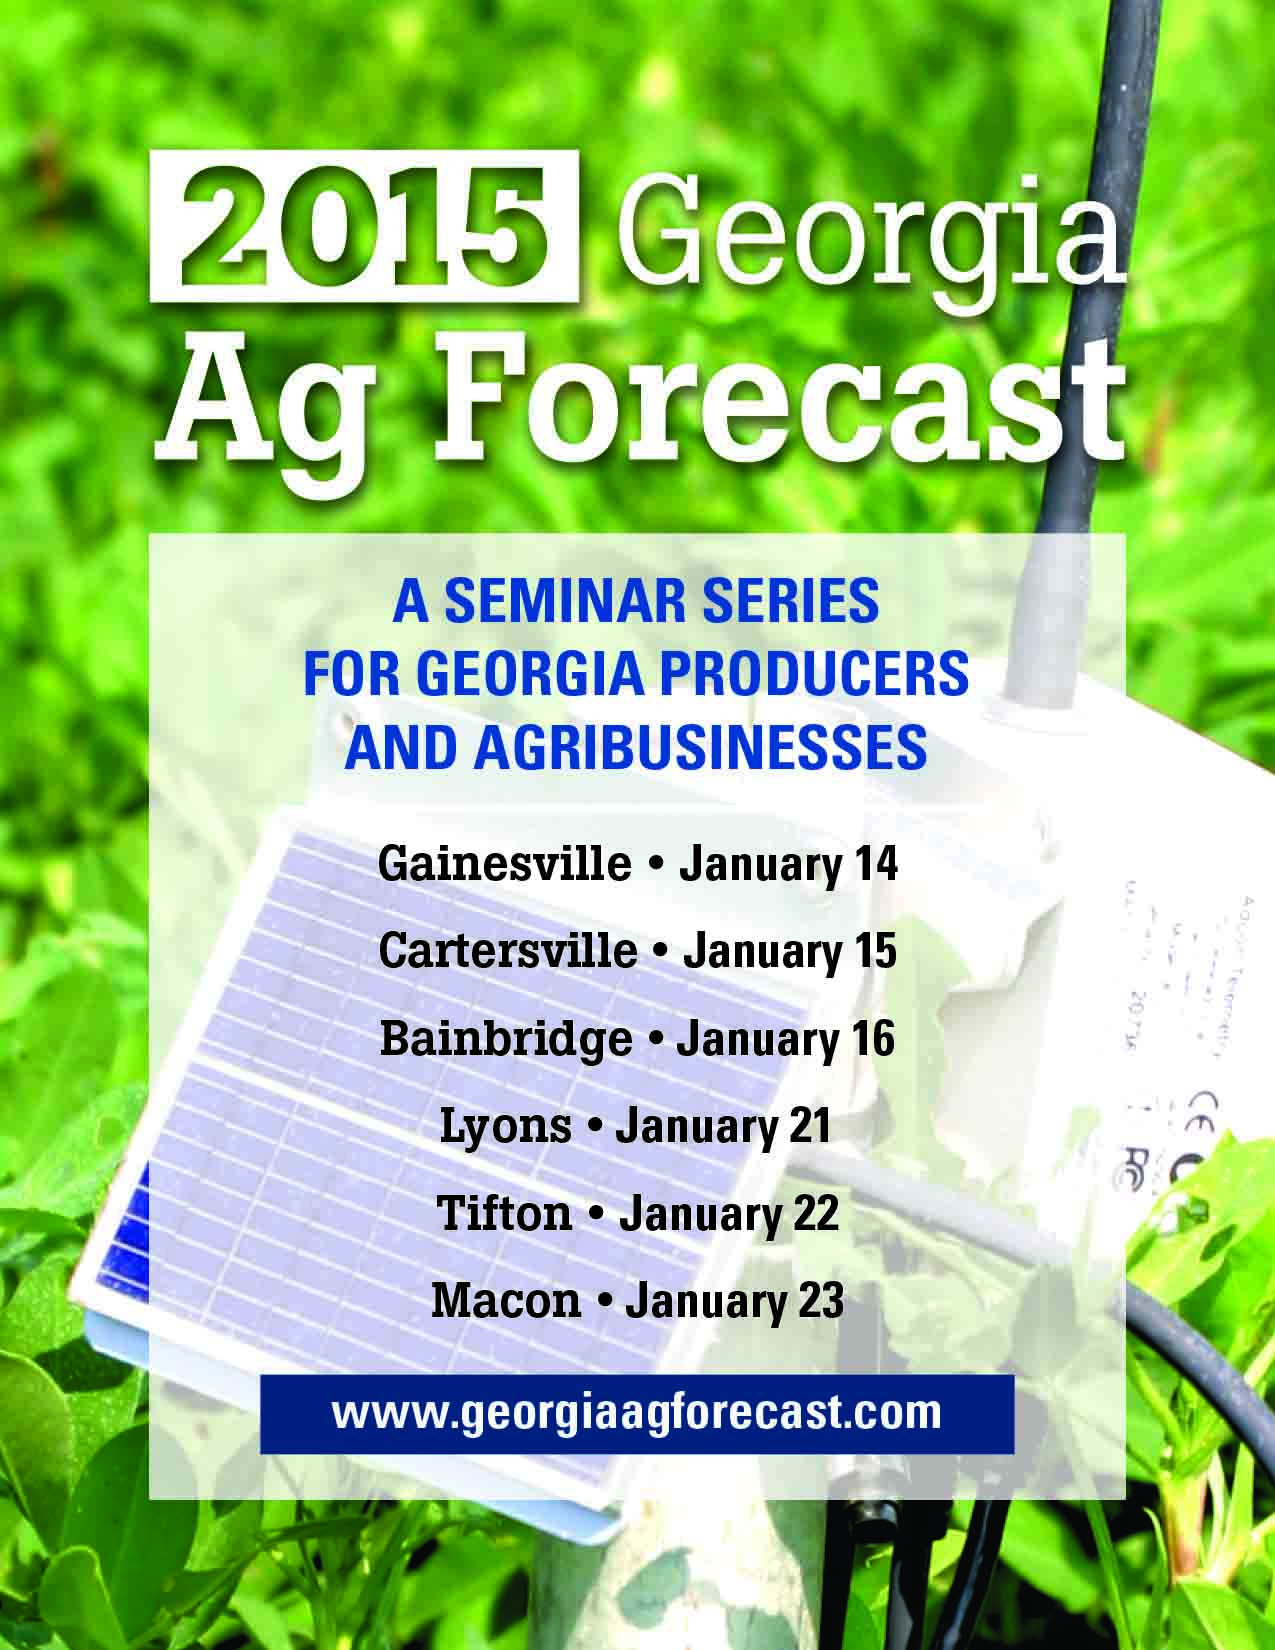 The Ag Forecast 2015 series will be held Jan. 14-23 in Gainesville, Cartersville, Bainbridge, Lyons, Tifton and Macon. Registration for the series is open at www.georgiaagforecast.com.